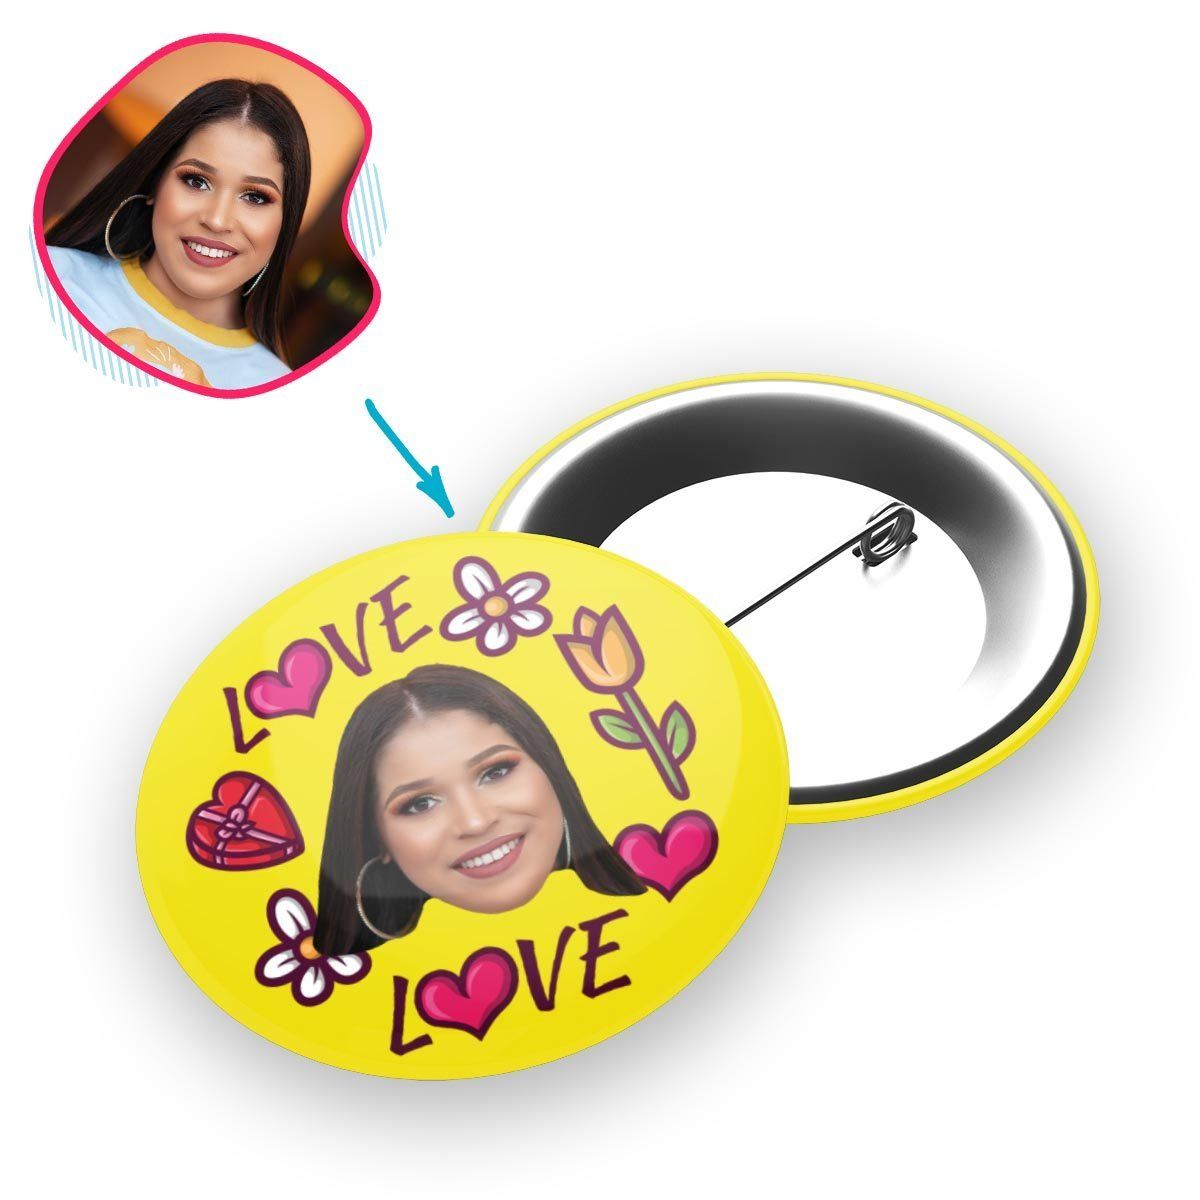 yellow Hearts and Flowers pin personalized with photo of face printed on it